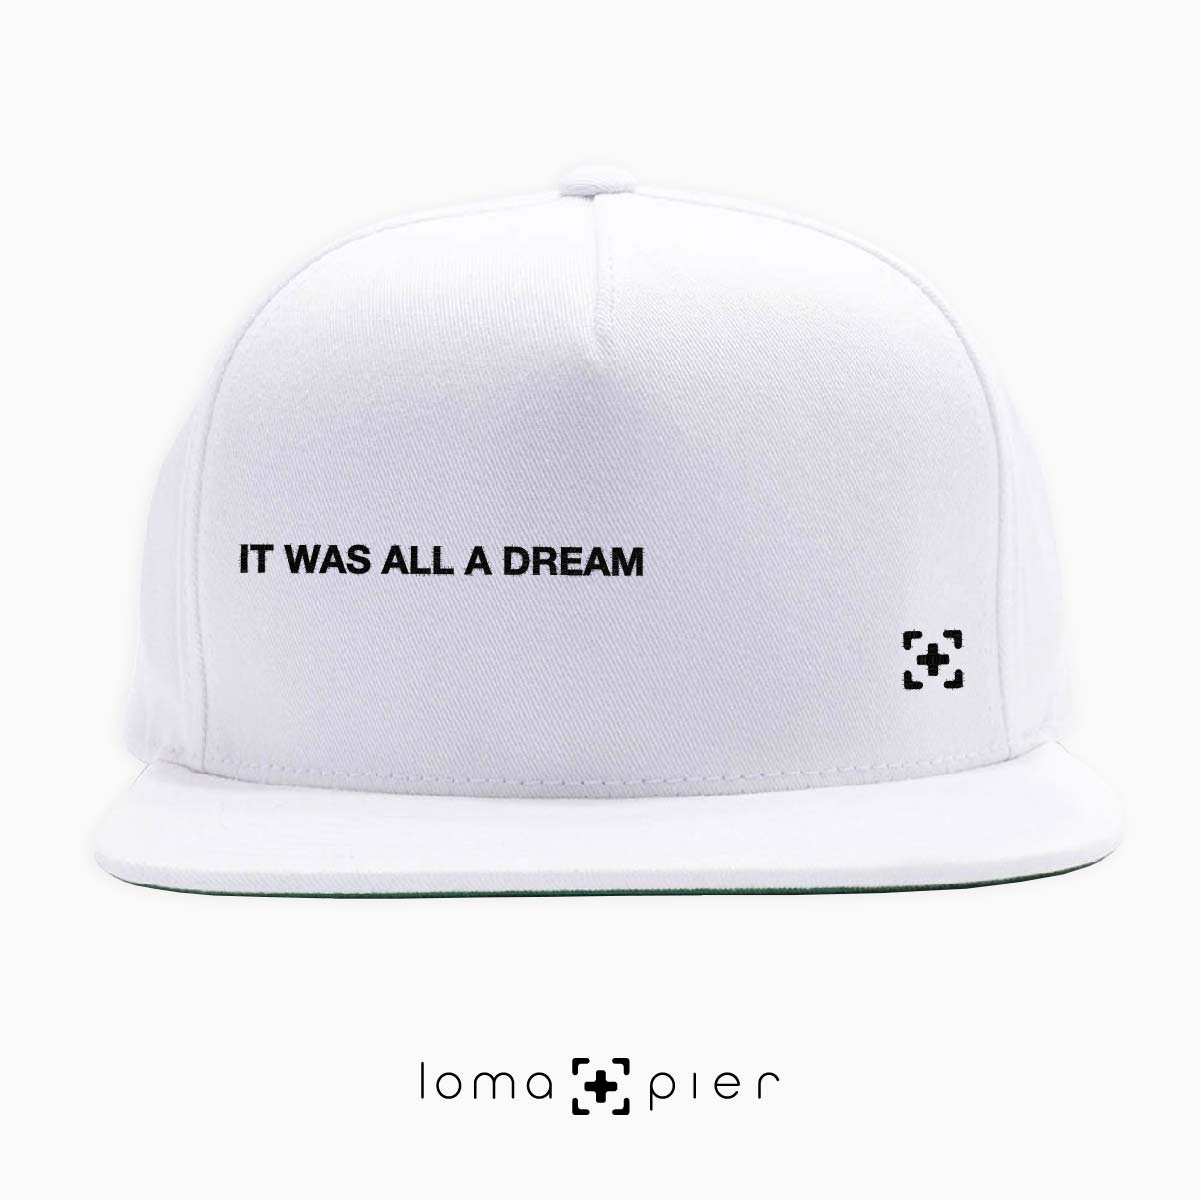 """it was all a dream"" biggie lyrics hat at the loma and pier hat shop"